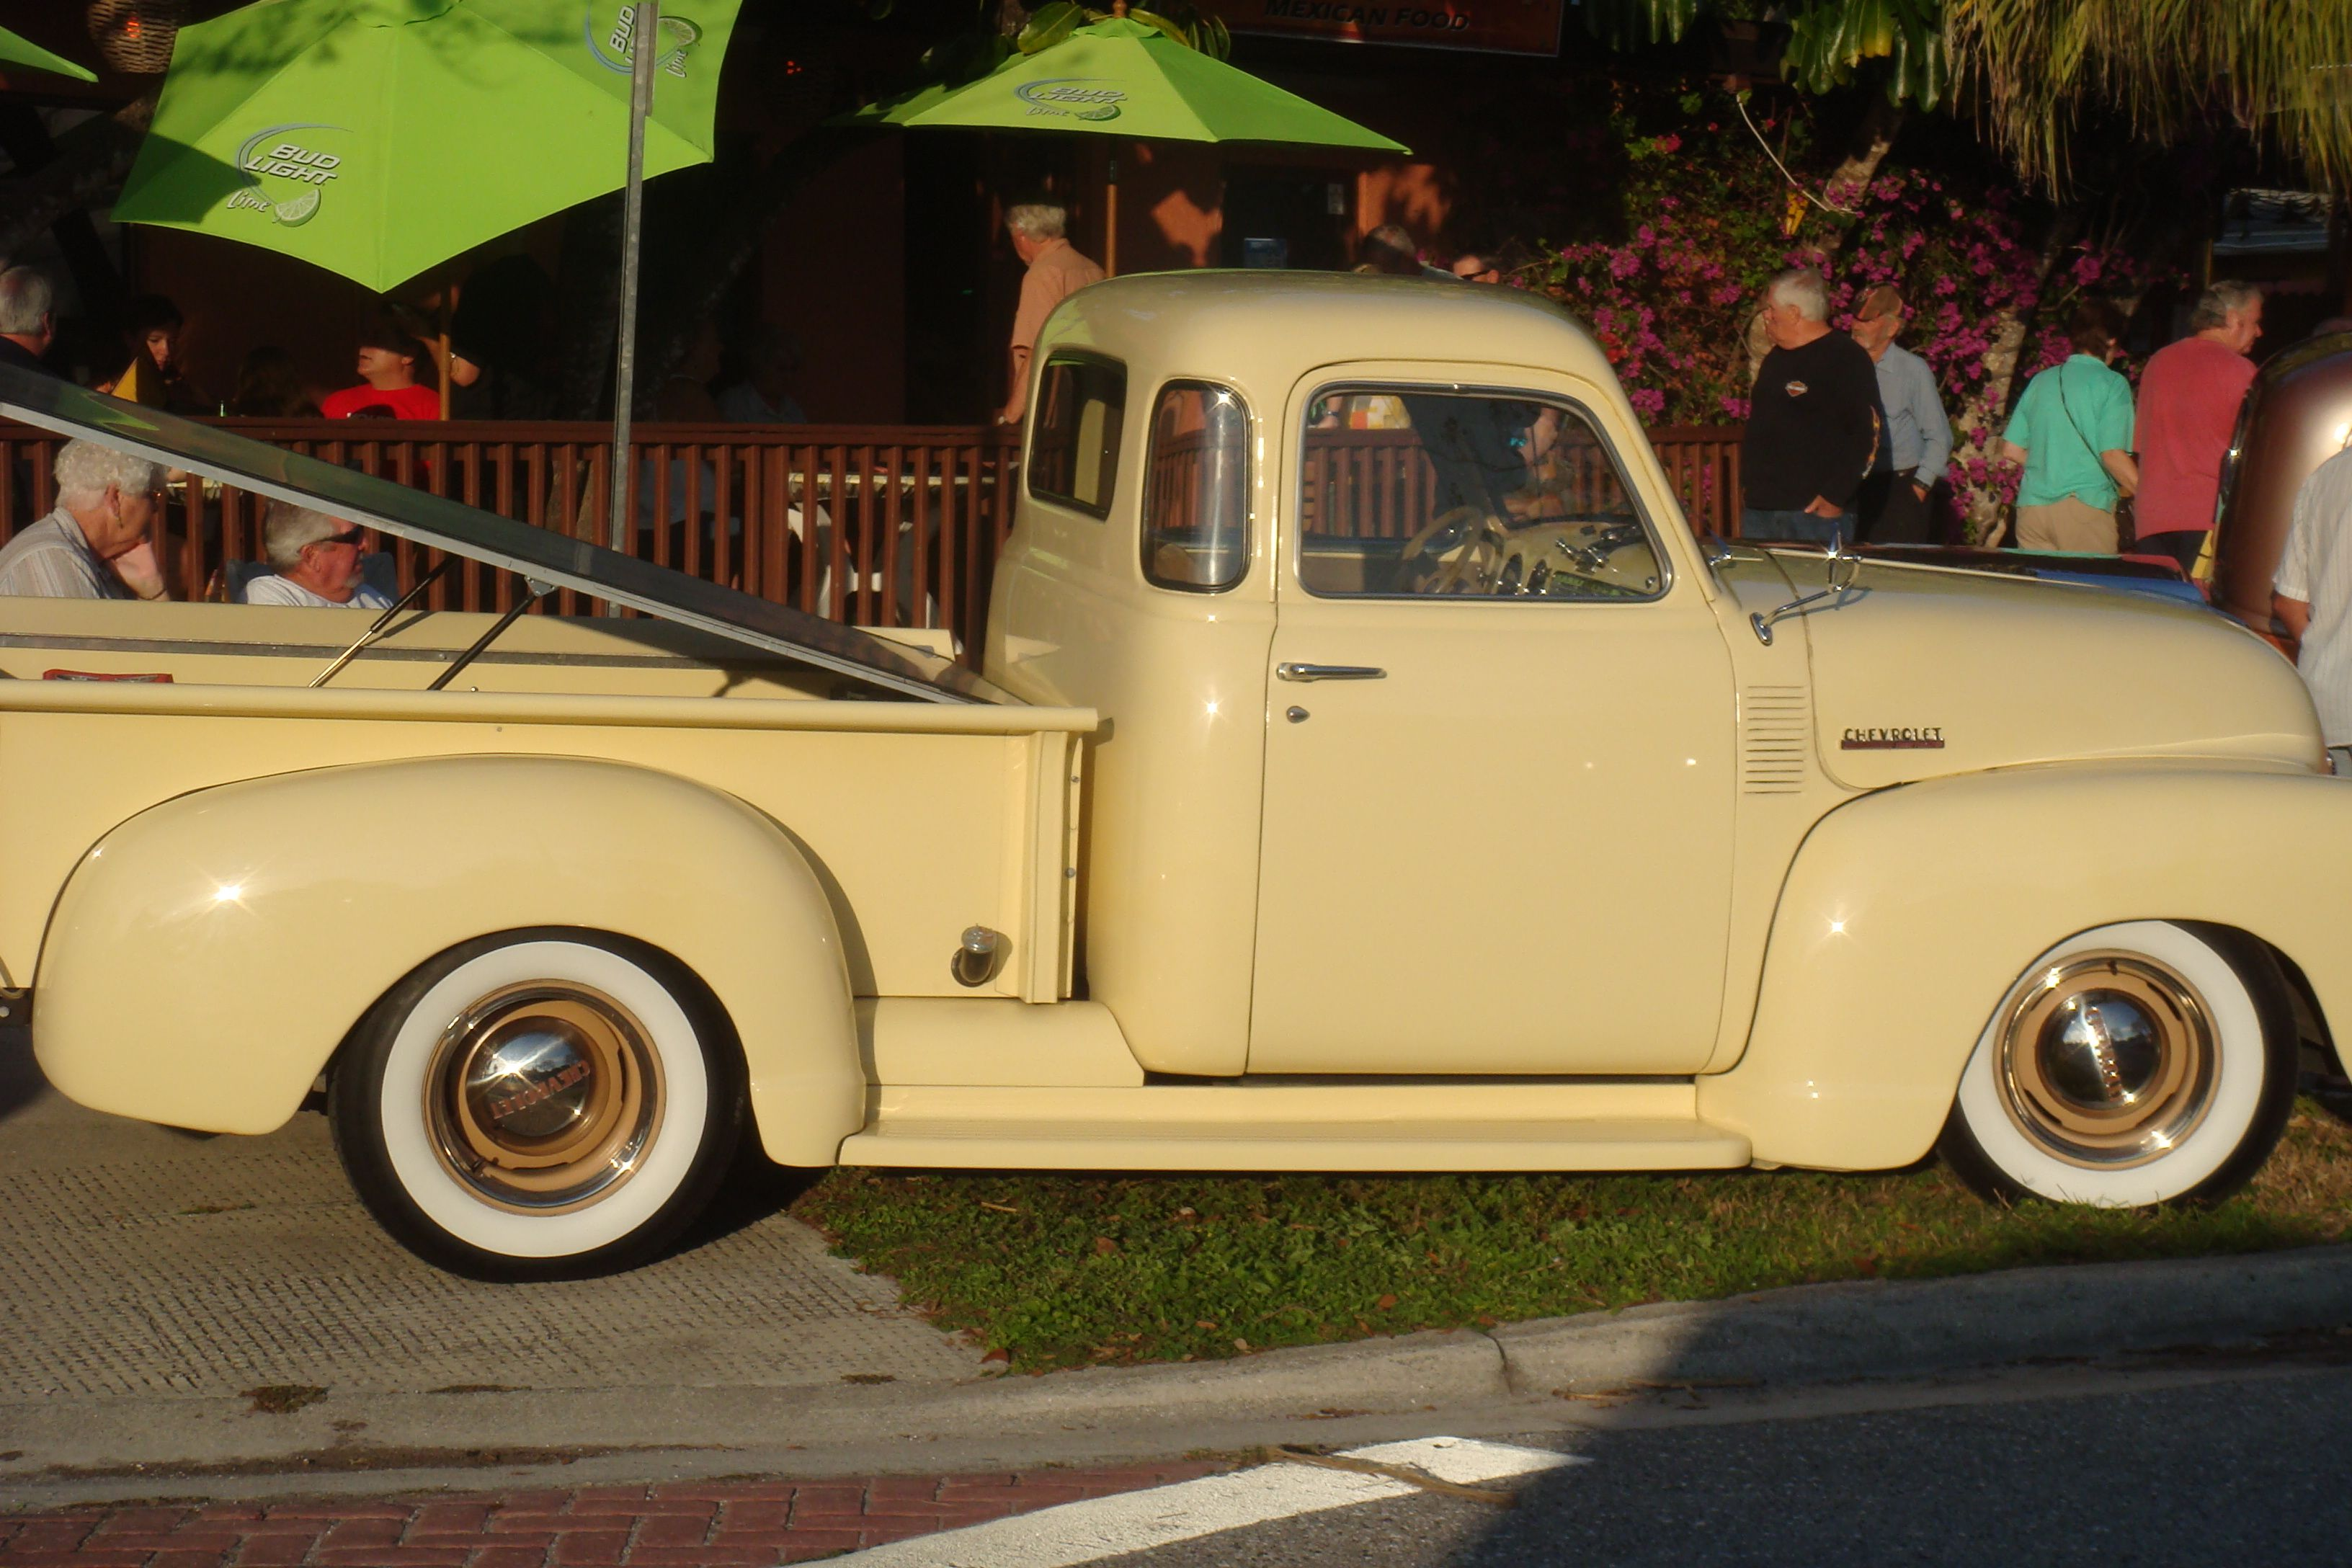 We Went To A Car Show In Englewood Florida And This Was There My - Englewood car show